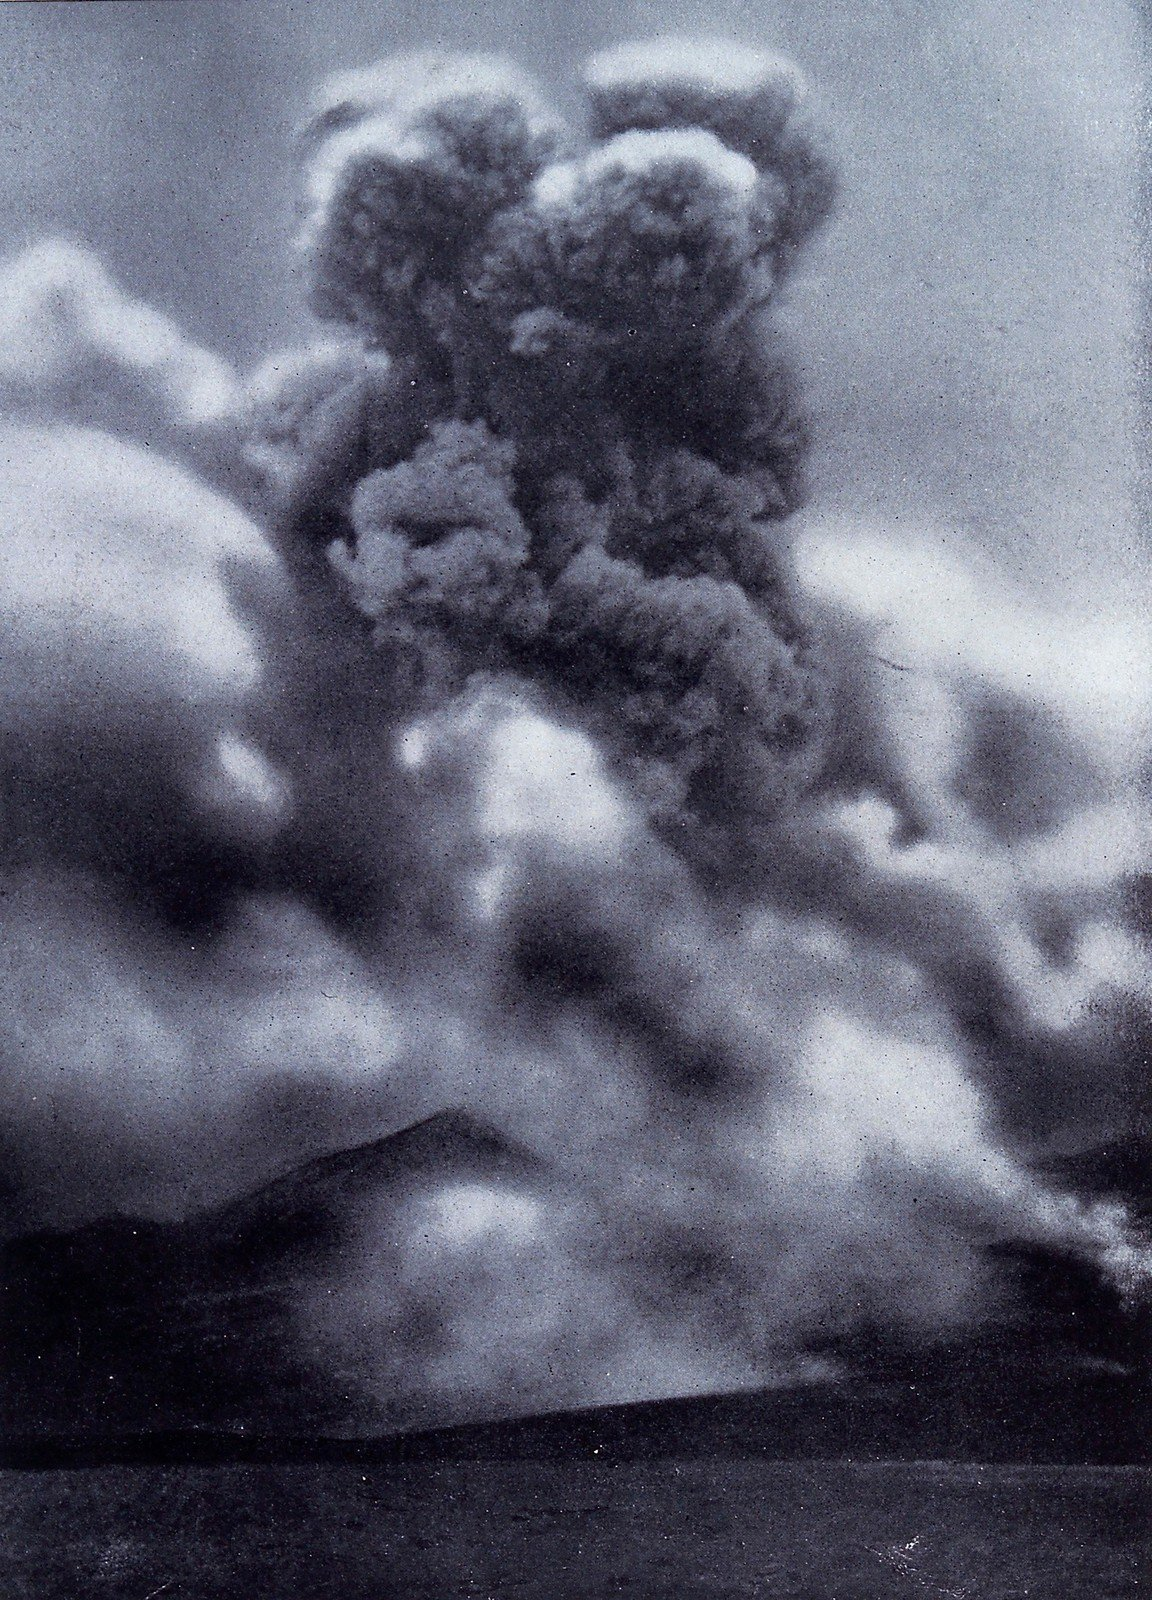 Mont Pelée, Martinique, in eruption, 1929, Underwood & Underwood, Wellcome Collection, CC BY